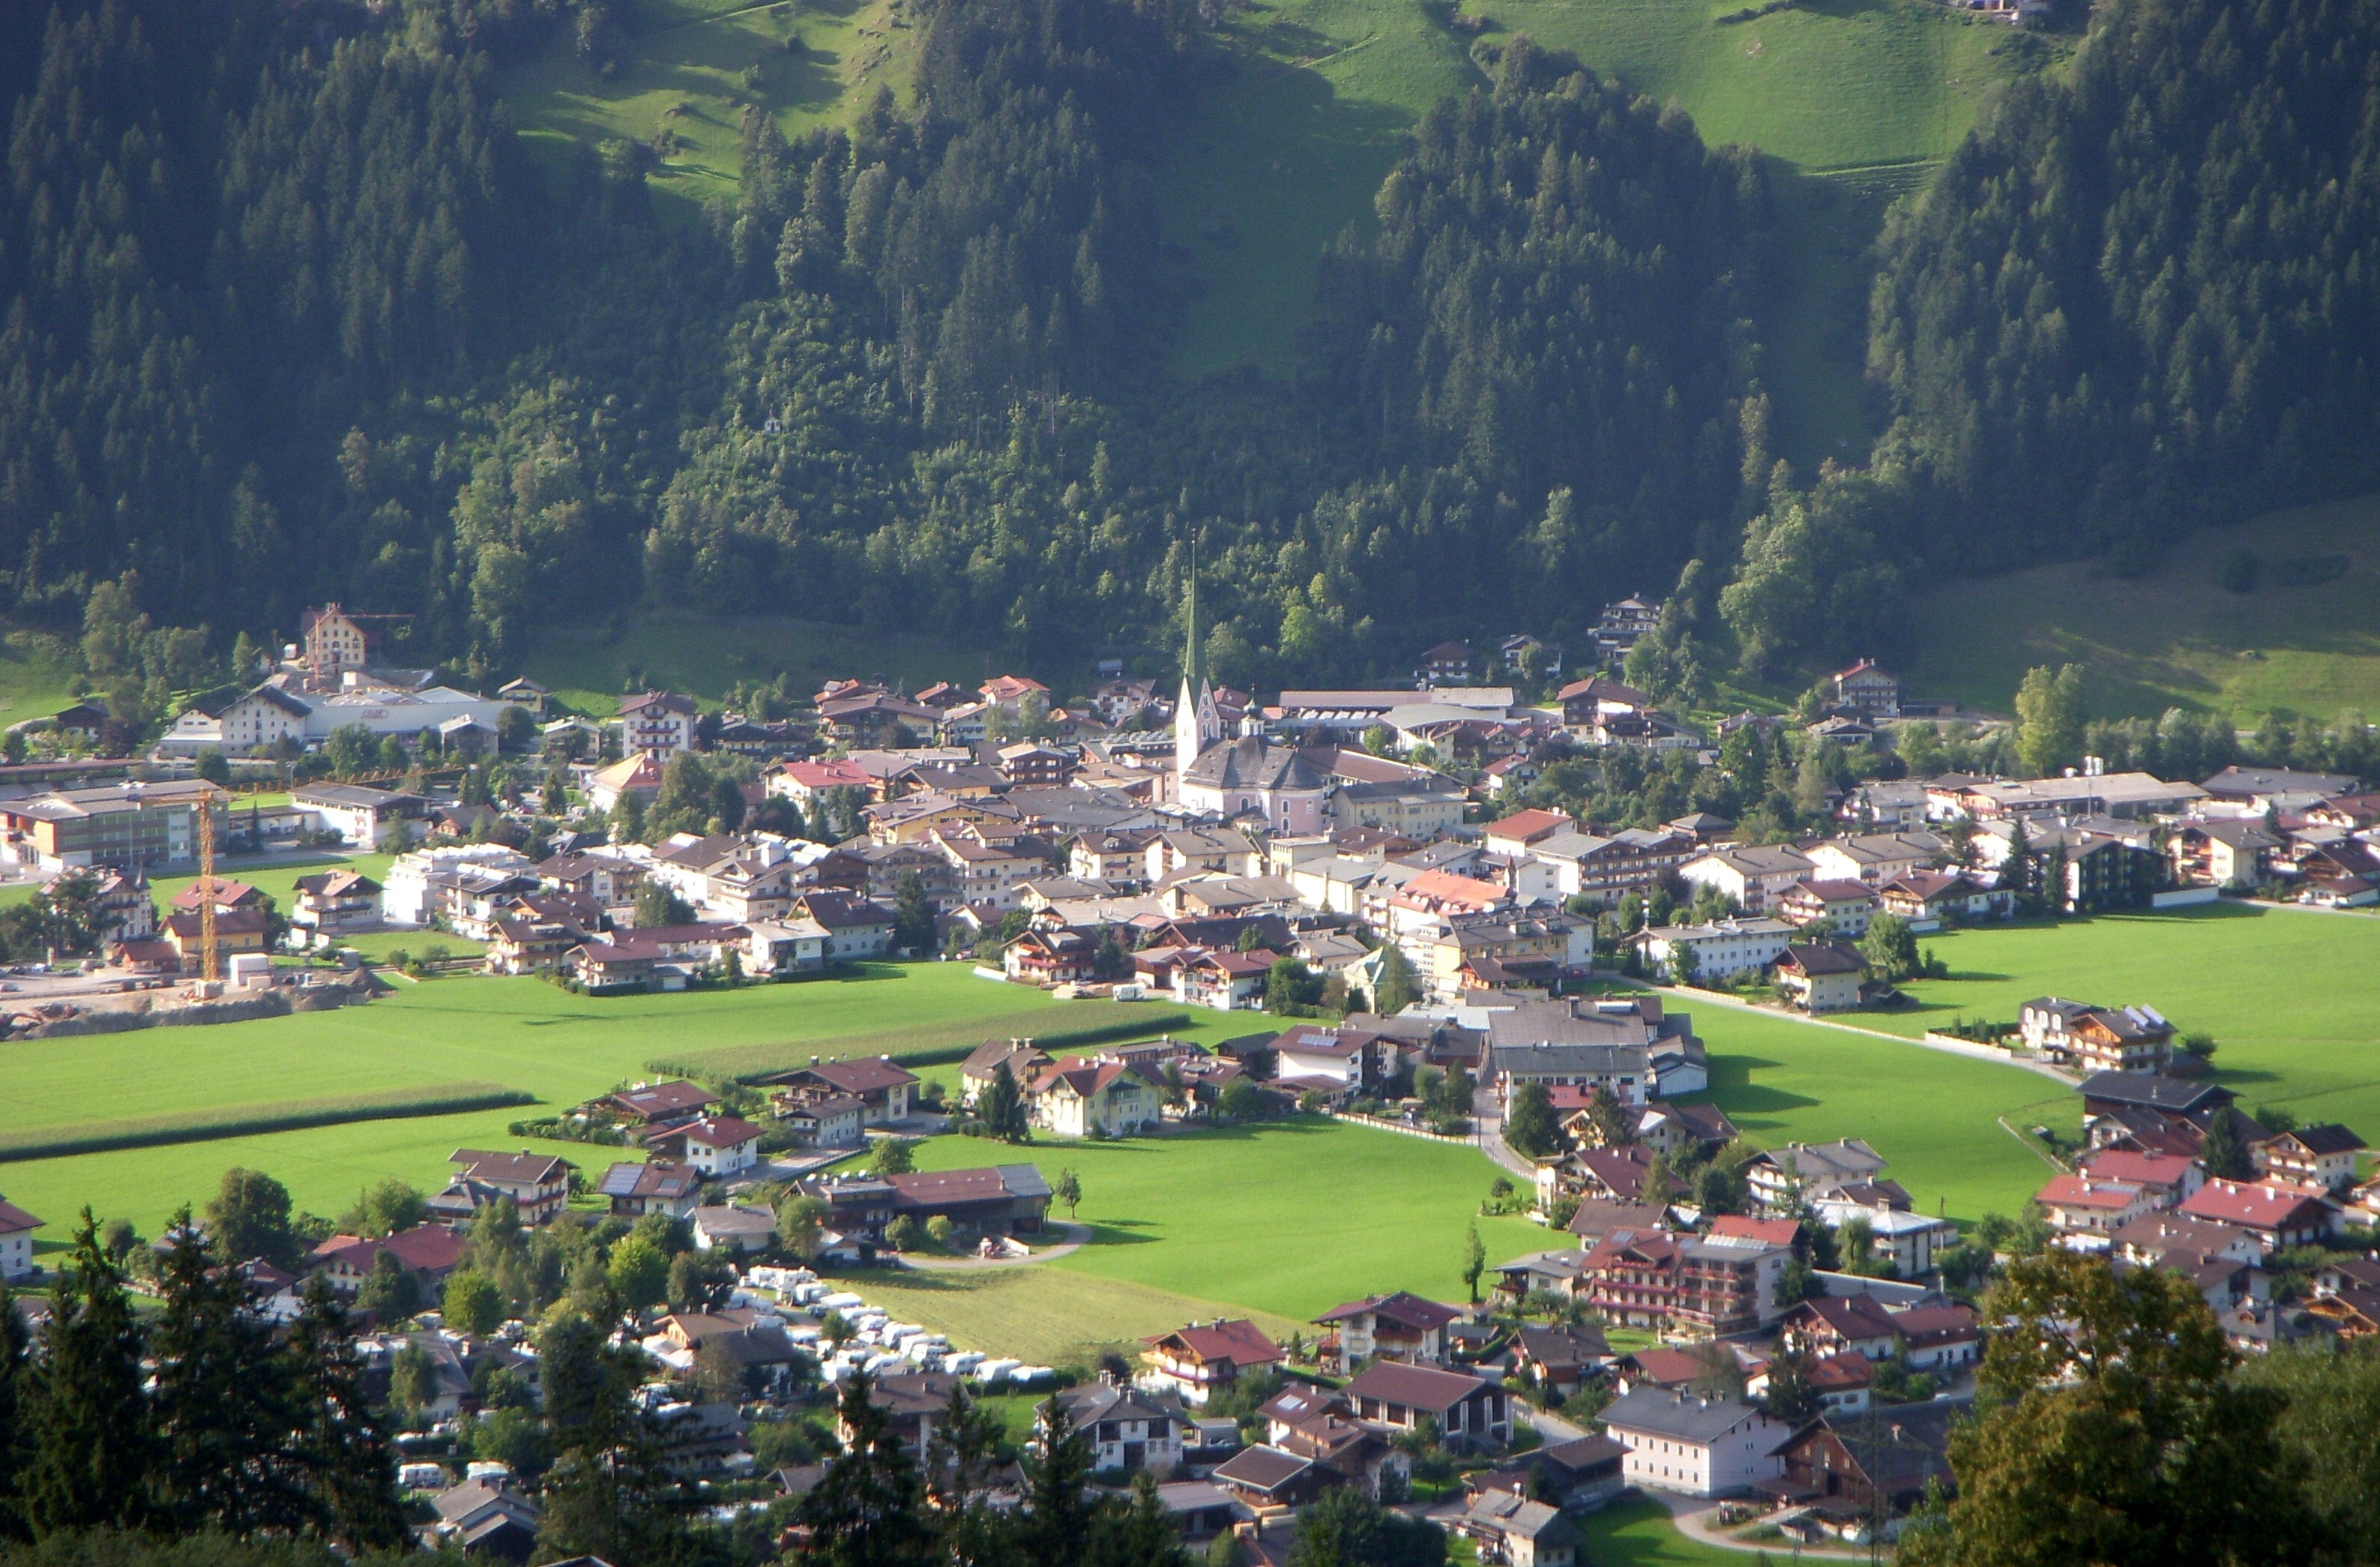 Zell am Ziller Austria  city pictures gallery : Zell am Ziller im September 2008, Blick vom Hainzenberg